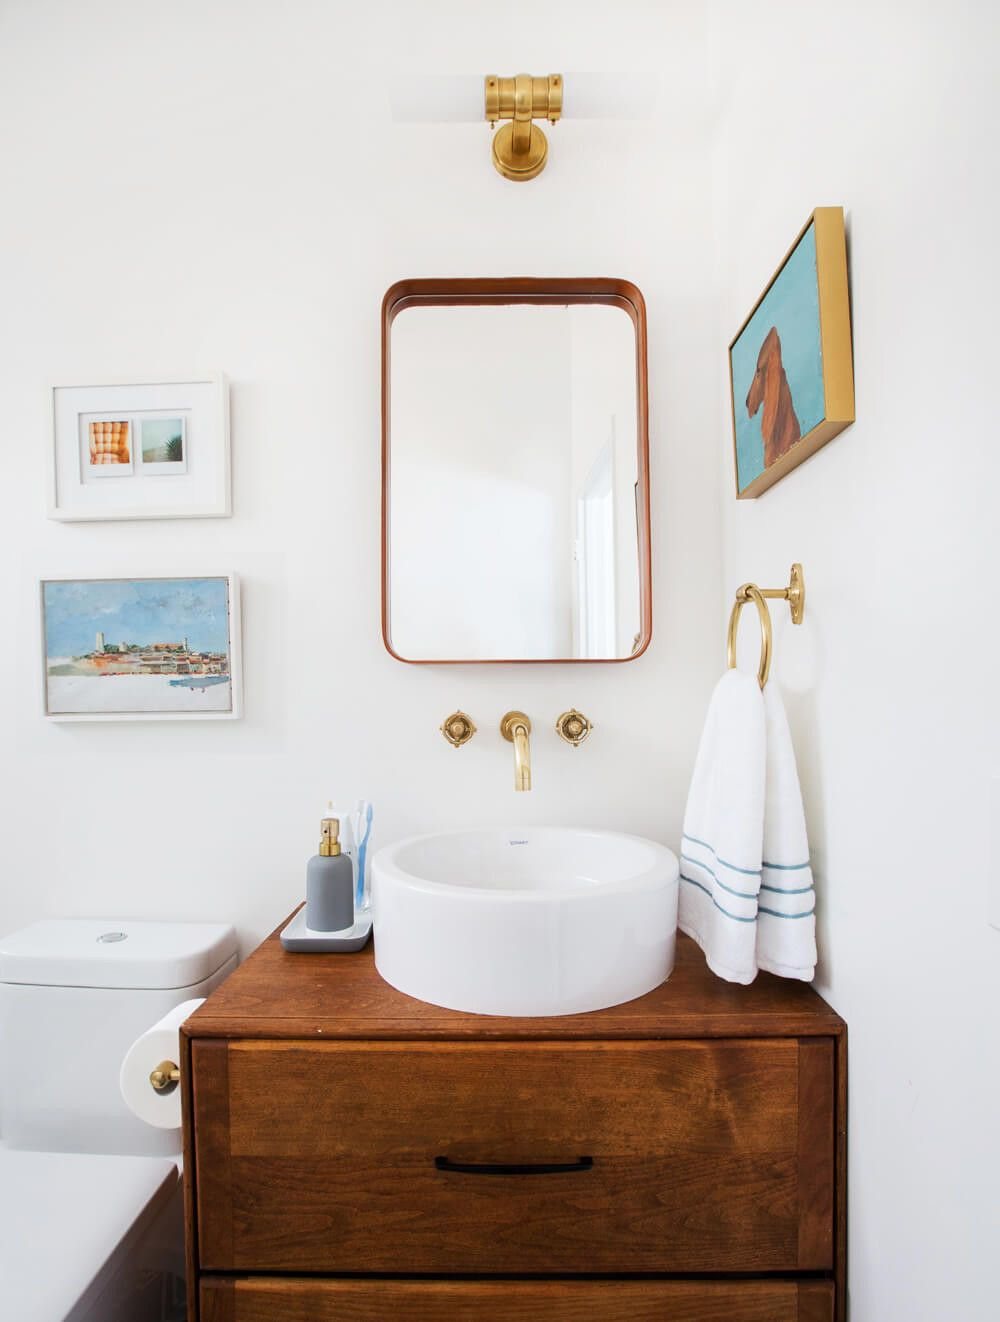 Unique Bathroom Sink Ideas That Are So Fresh and So Clean, Clean ...